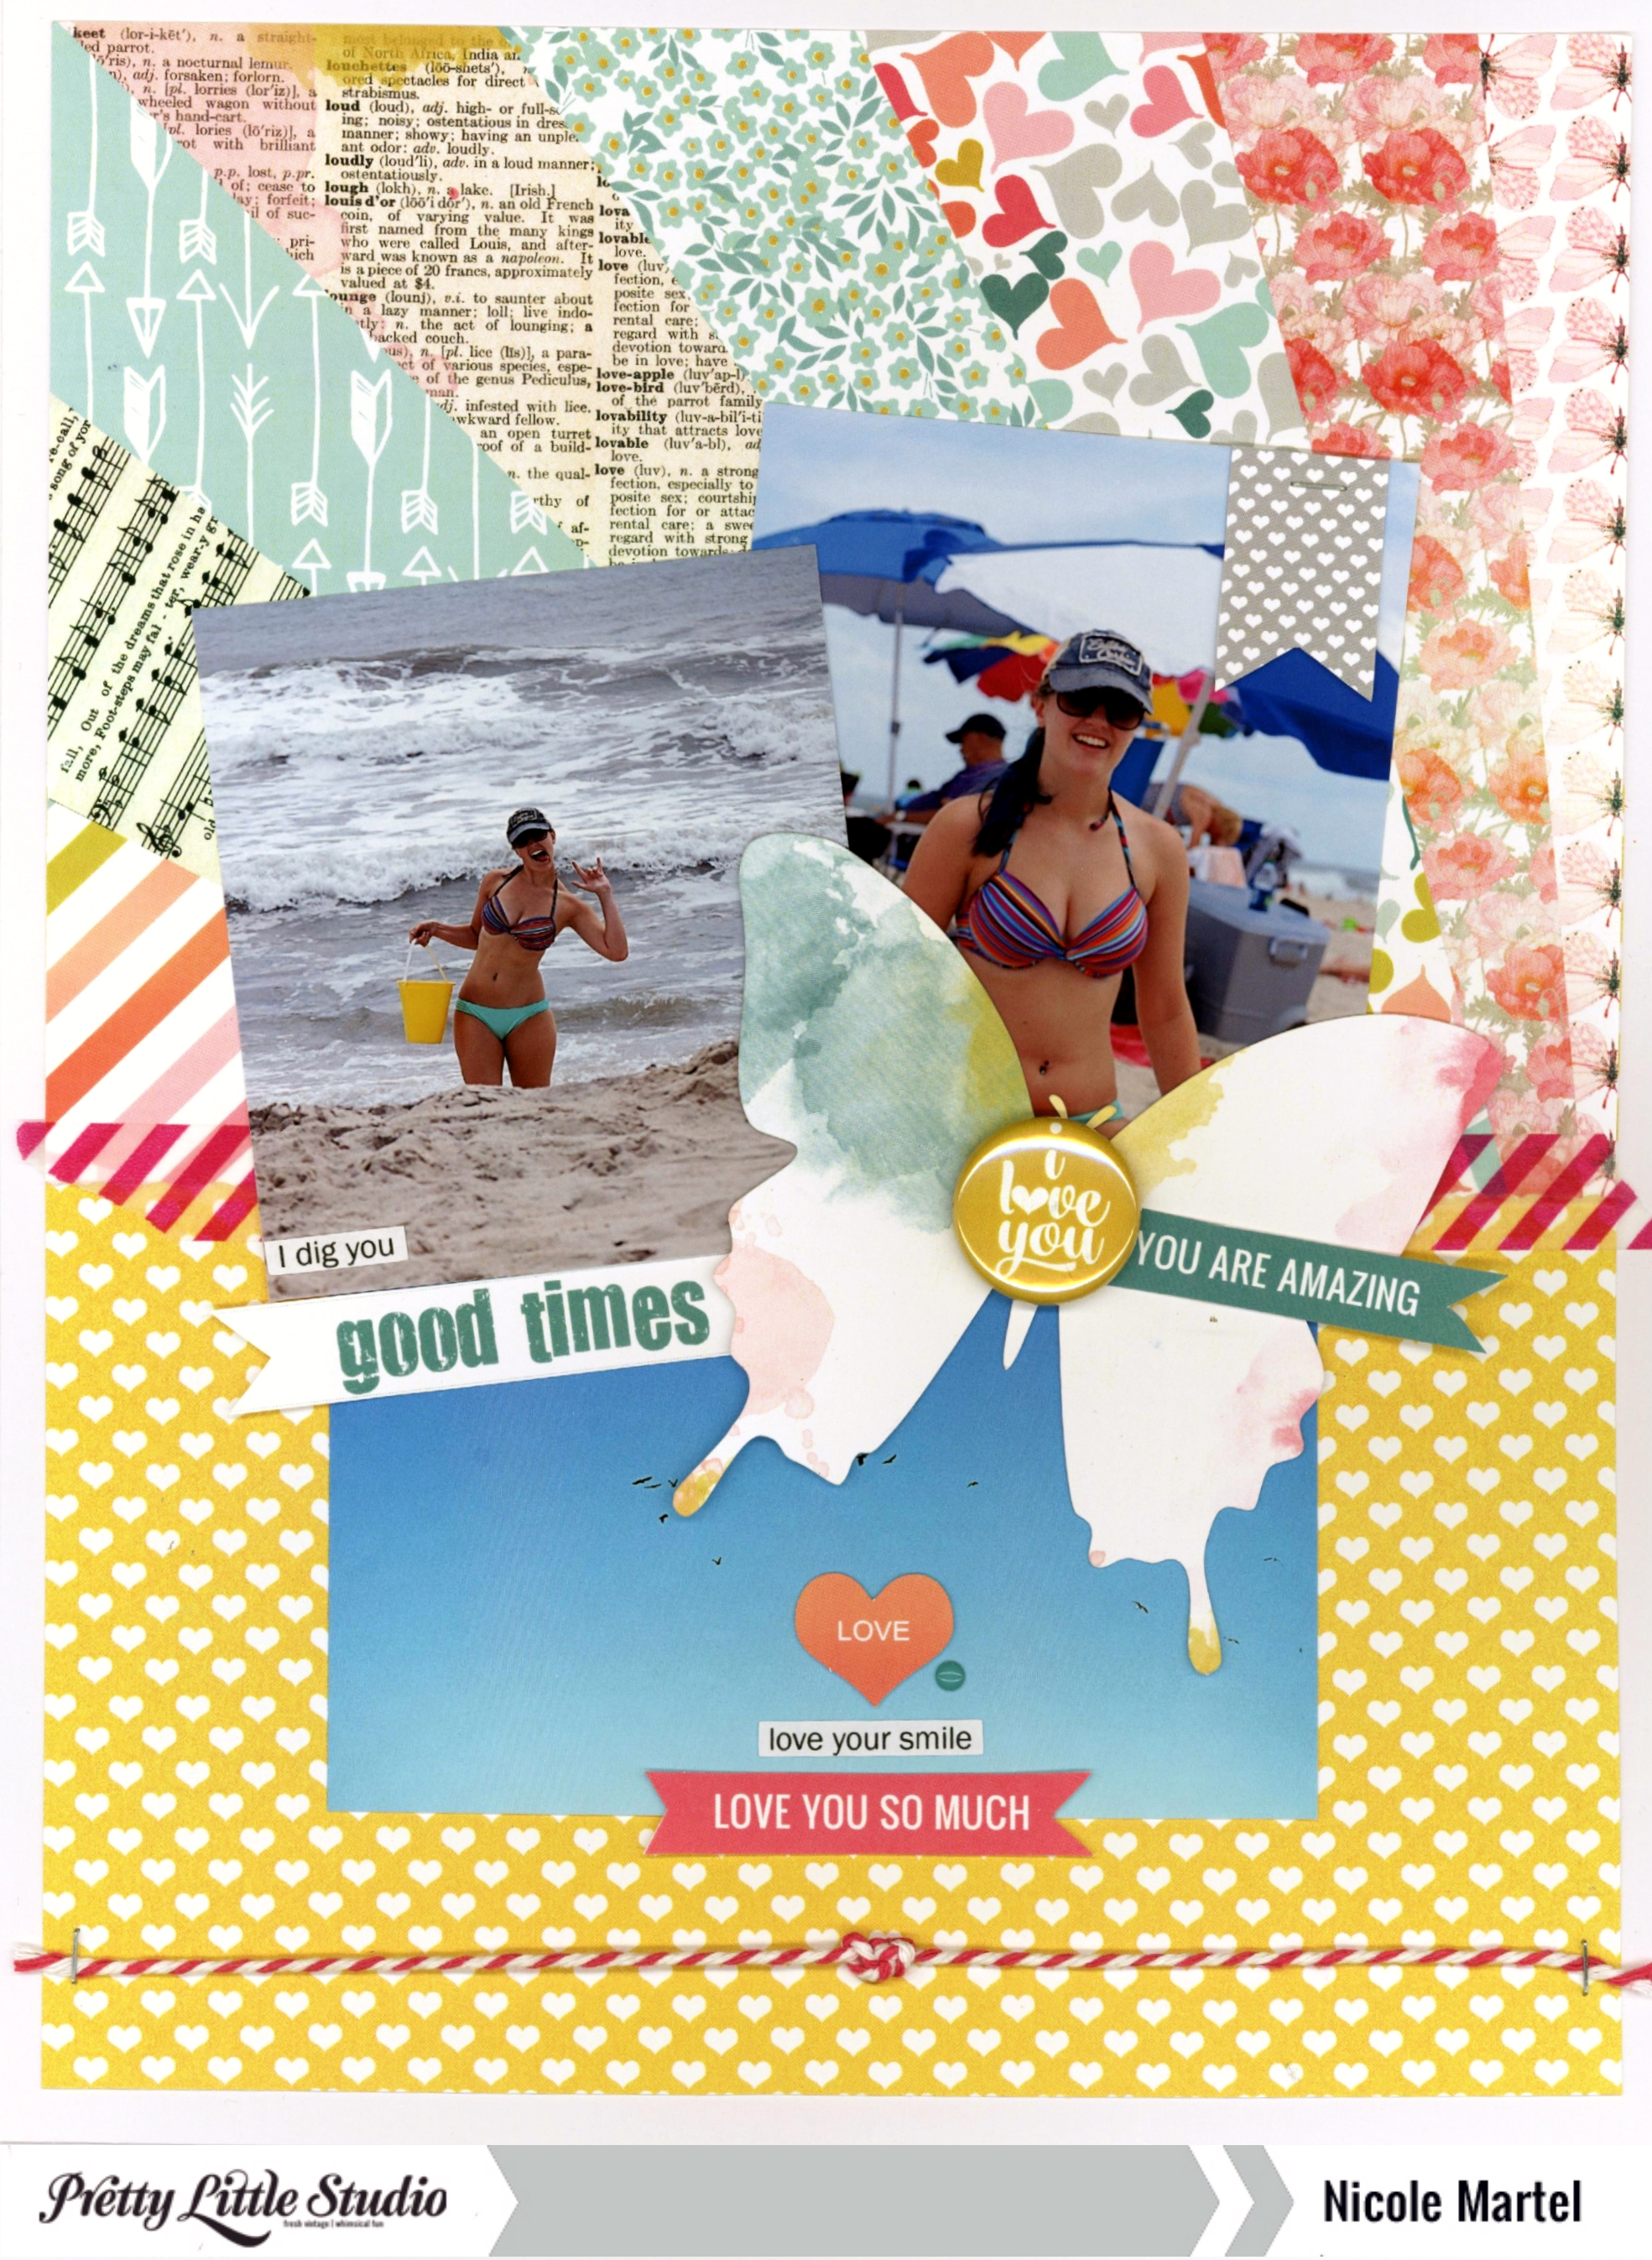 adore you_nicole martel_Pretty Little Studio_layout